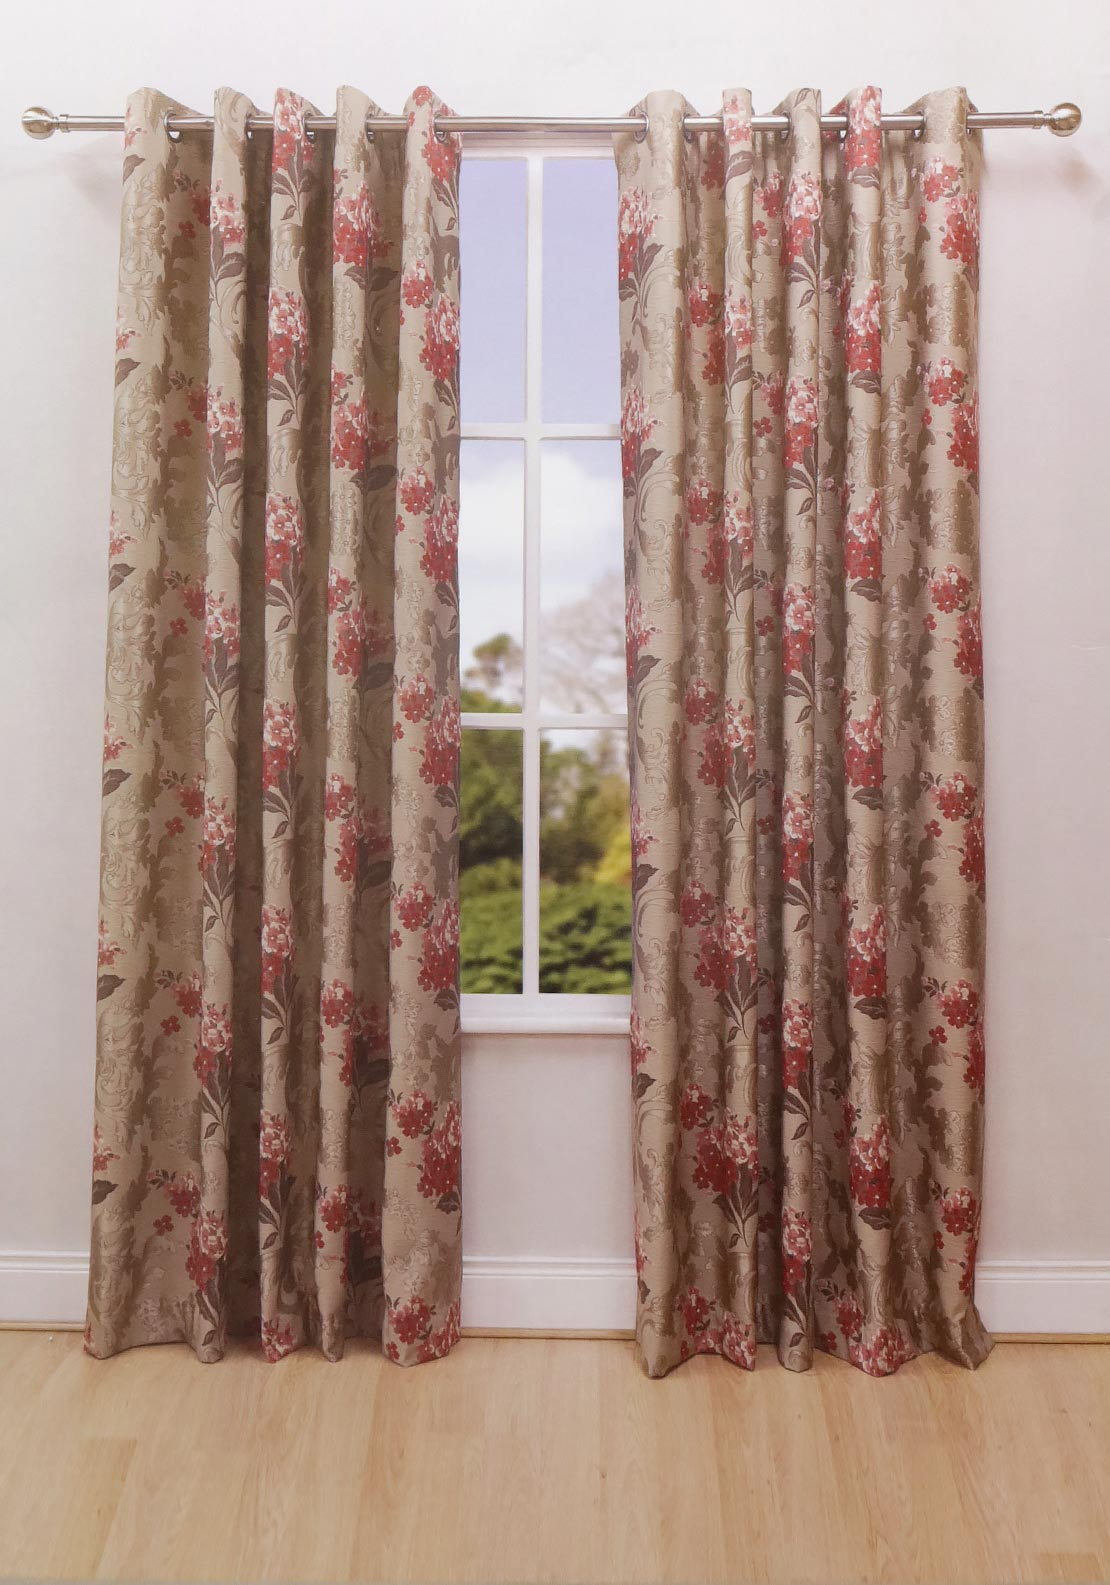 Buy Scatterbox Pasha Ready Made Eyelet Top Curtains Red - Ready made curtains red